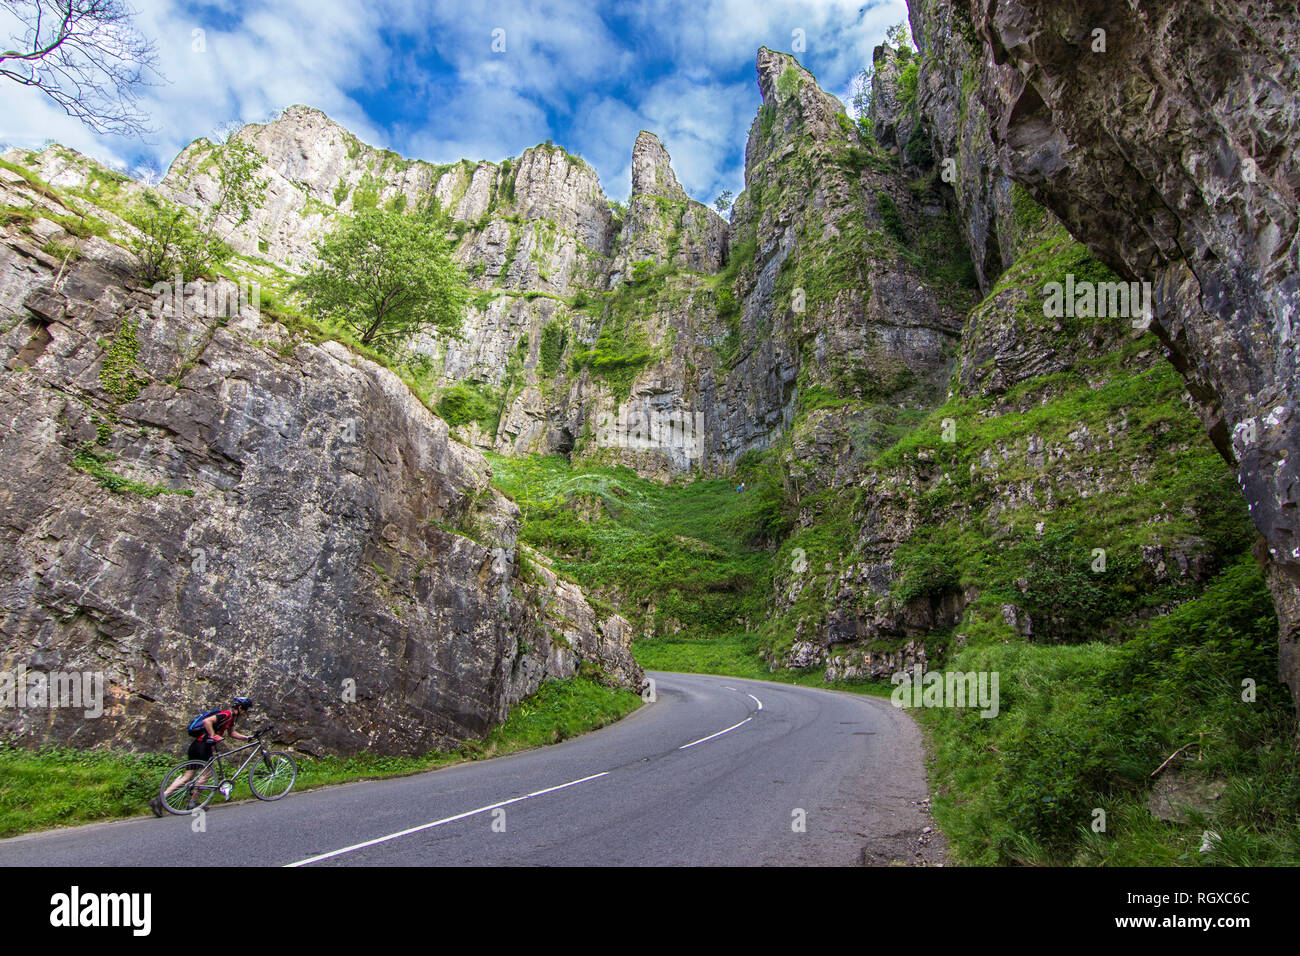 The amazing steep walls of Cheddar Gorge inside Mendip Hills is an awe limestone gorge on an idyllic natural landscape. Rugged terrain to enjoy nature - Stock Image